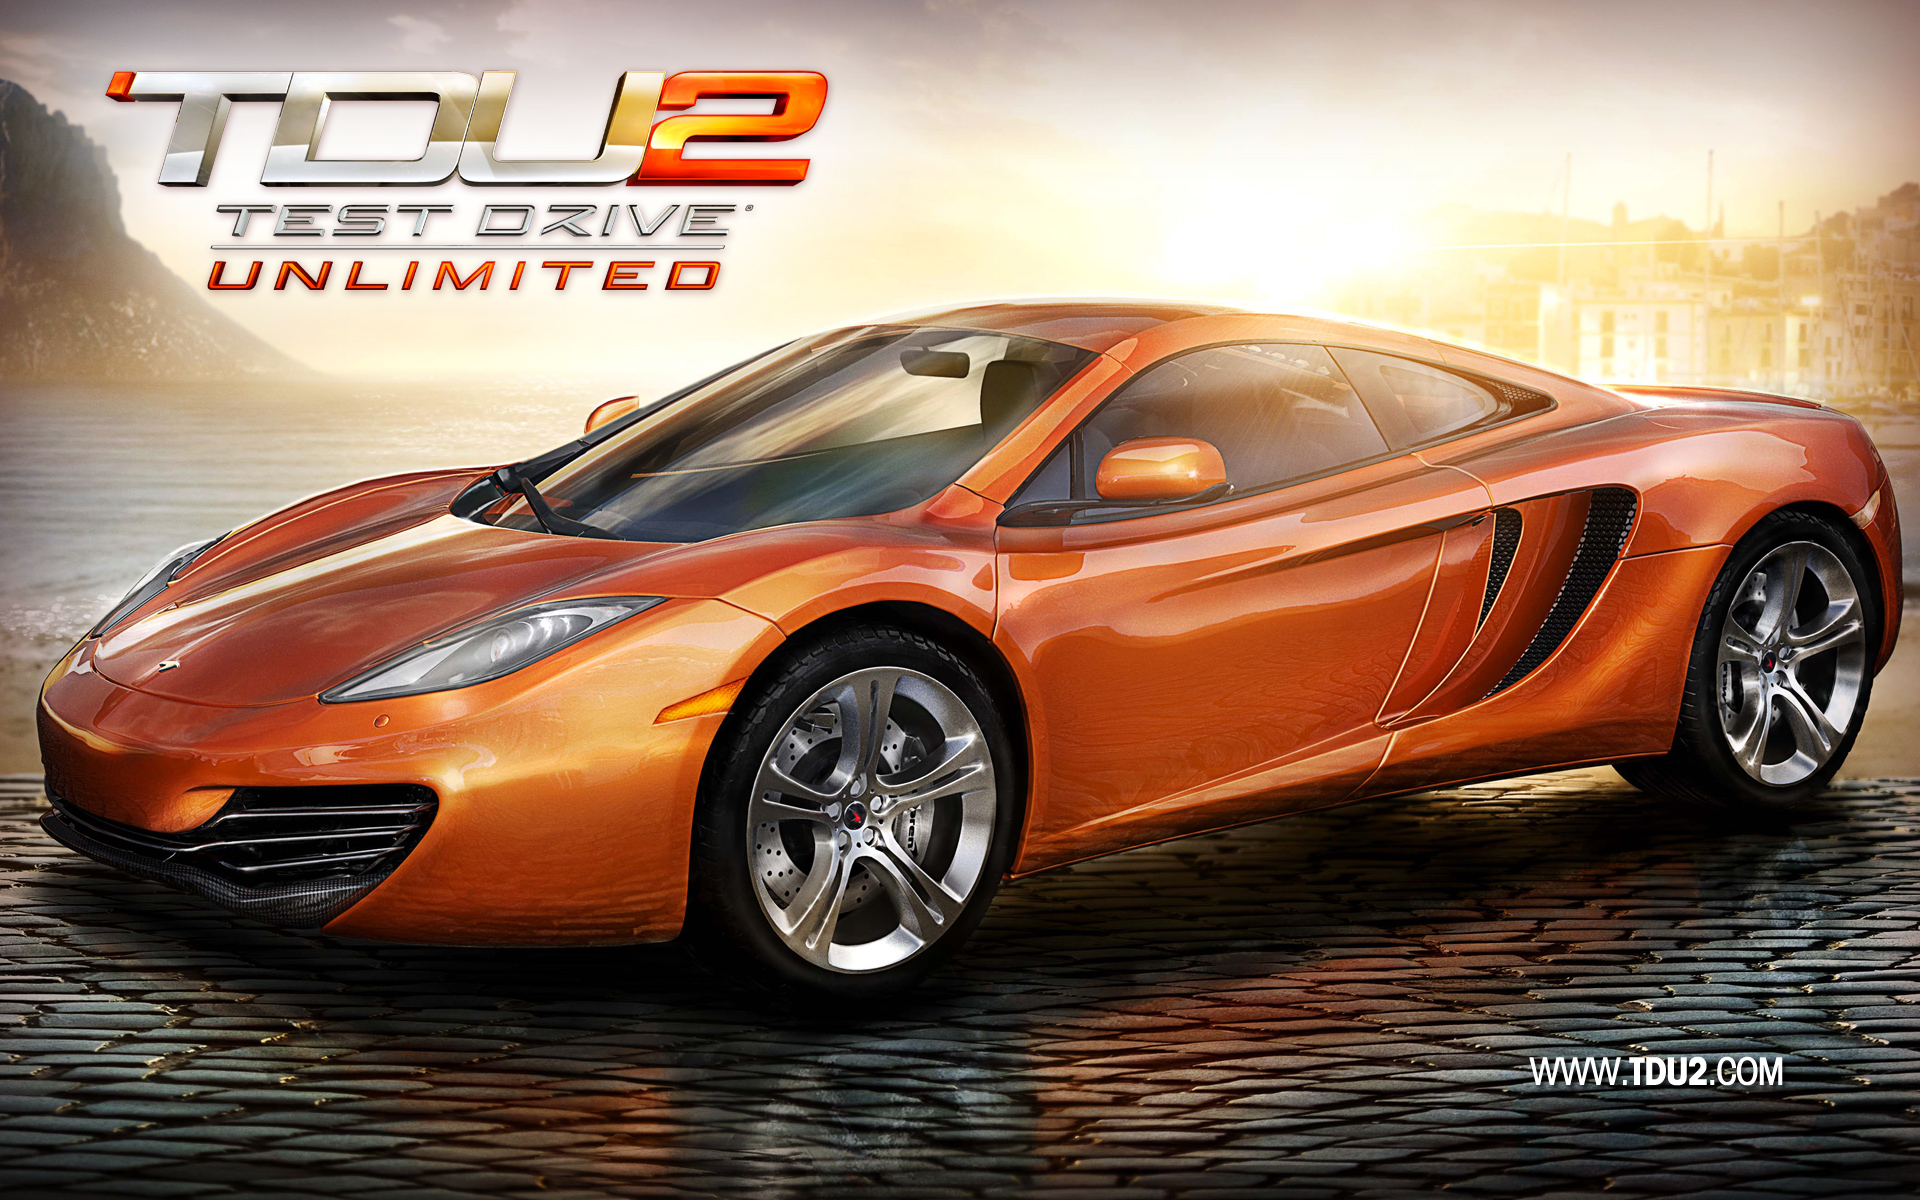 Test Drive Unlimited 2 Wallpapers HD Wallpapers 1920x1200